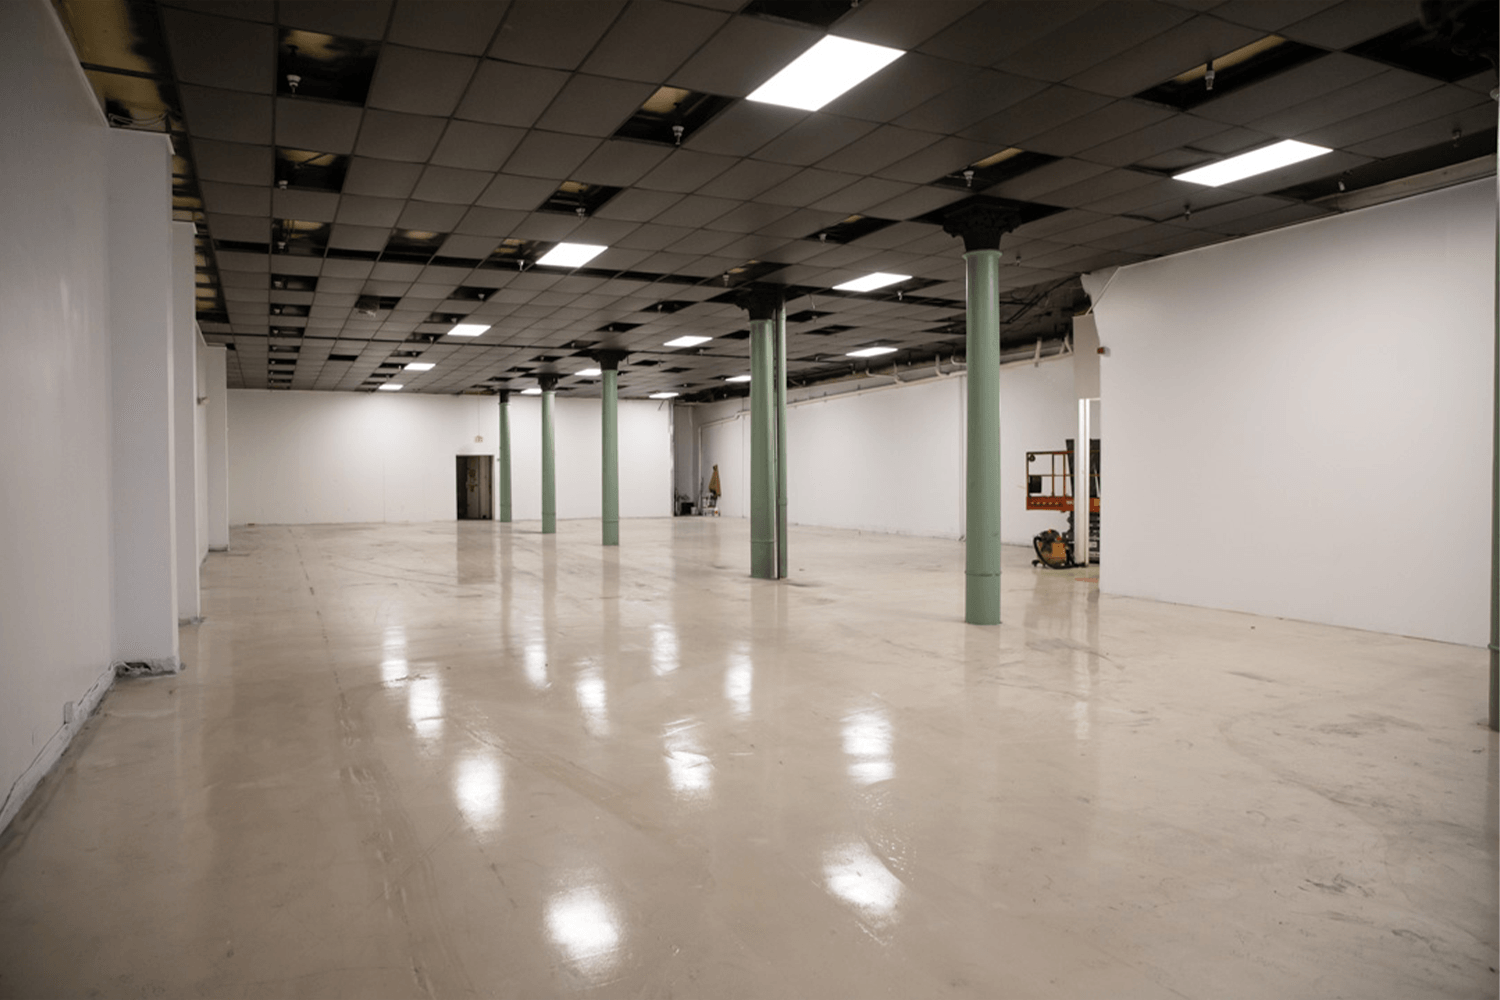 empty room with high ceilings, white walls, and green pillars